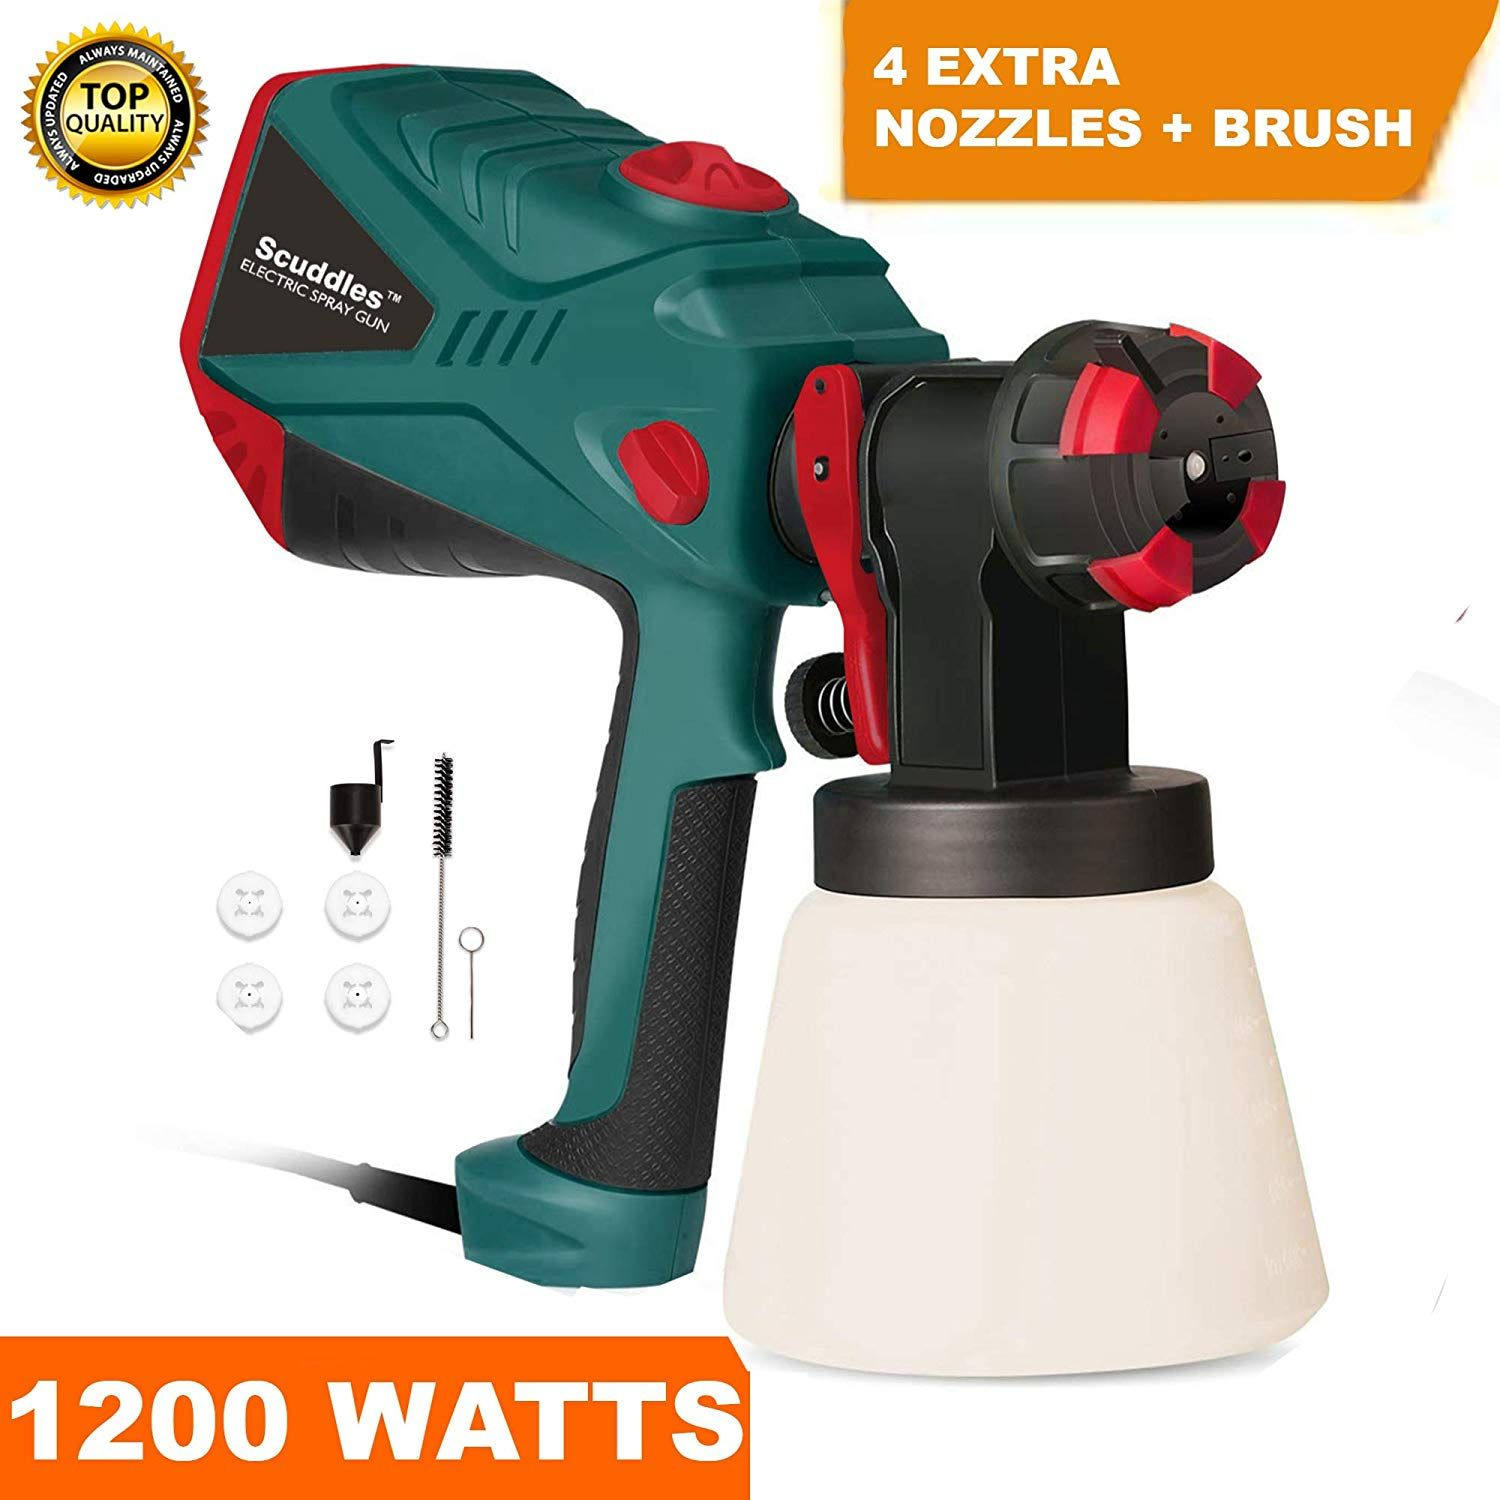 The 8 Best Paint Sprayers To Buy In 2019 Buyers Guide Paint Sprayer Paint Sprayer Reviews Best Paint Sprayer